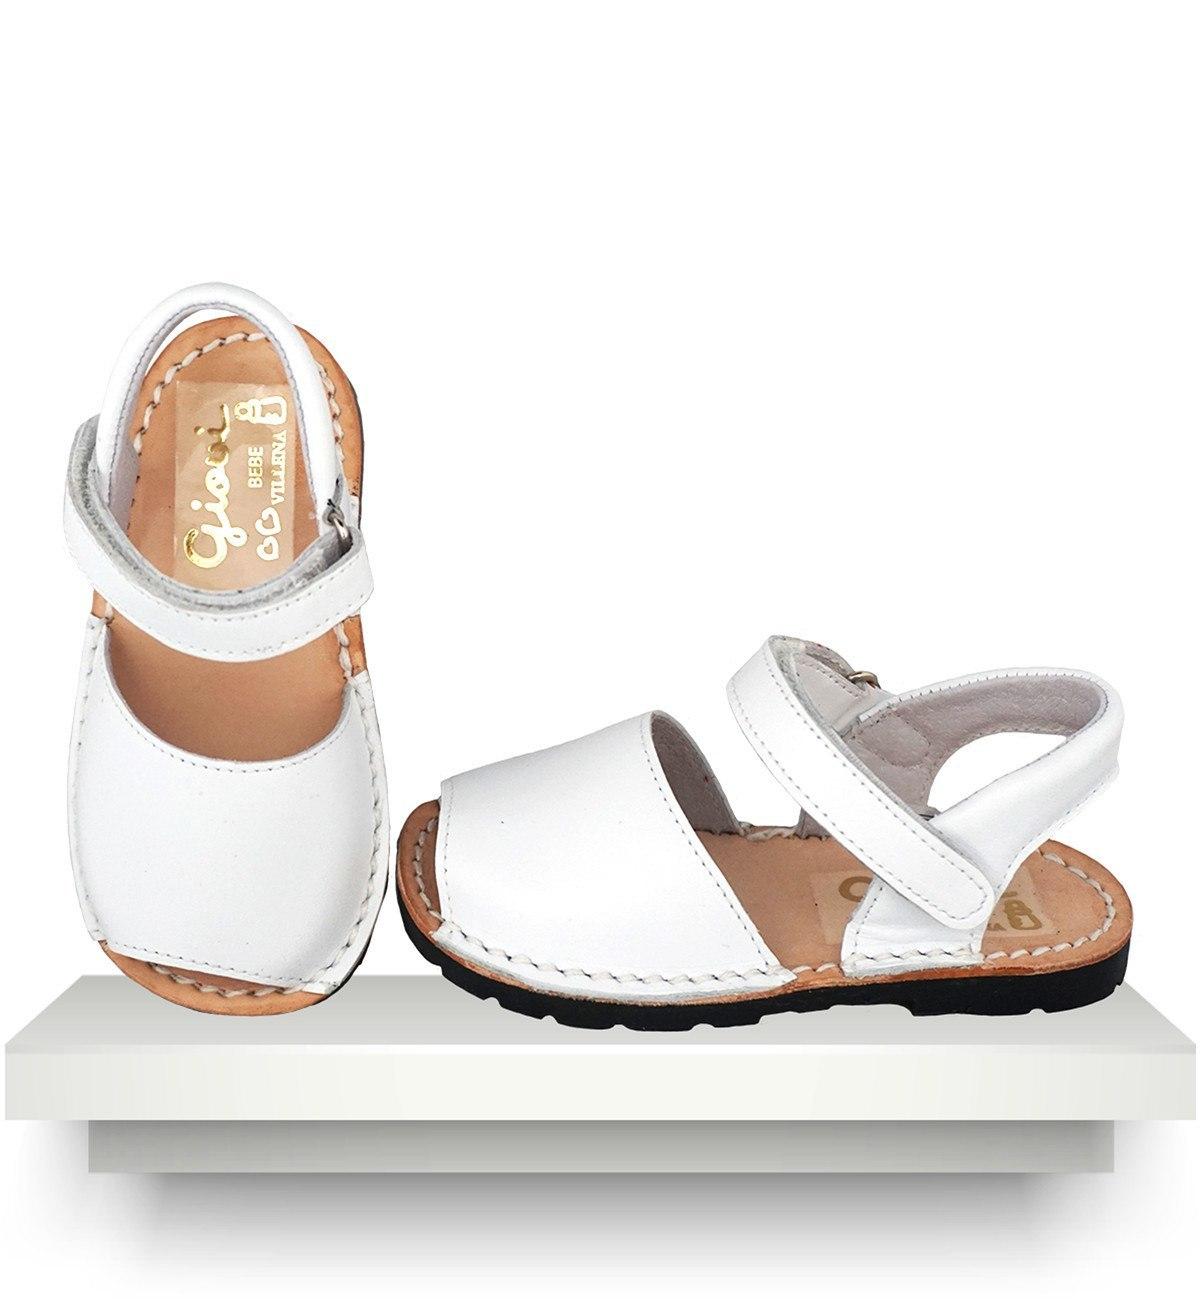 Spanish baby clothes | baby Shoes | Menorquinas sandals |babymaC  - 1